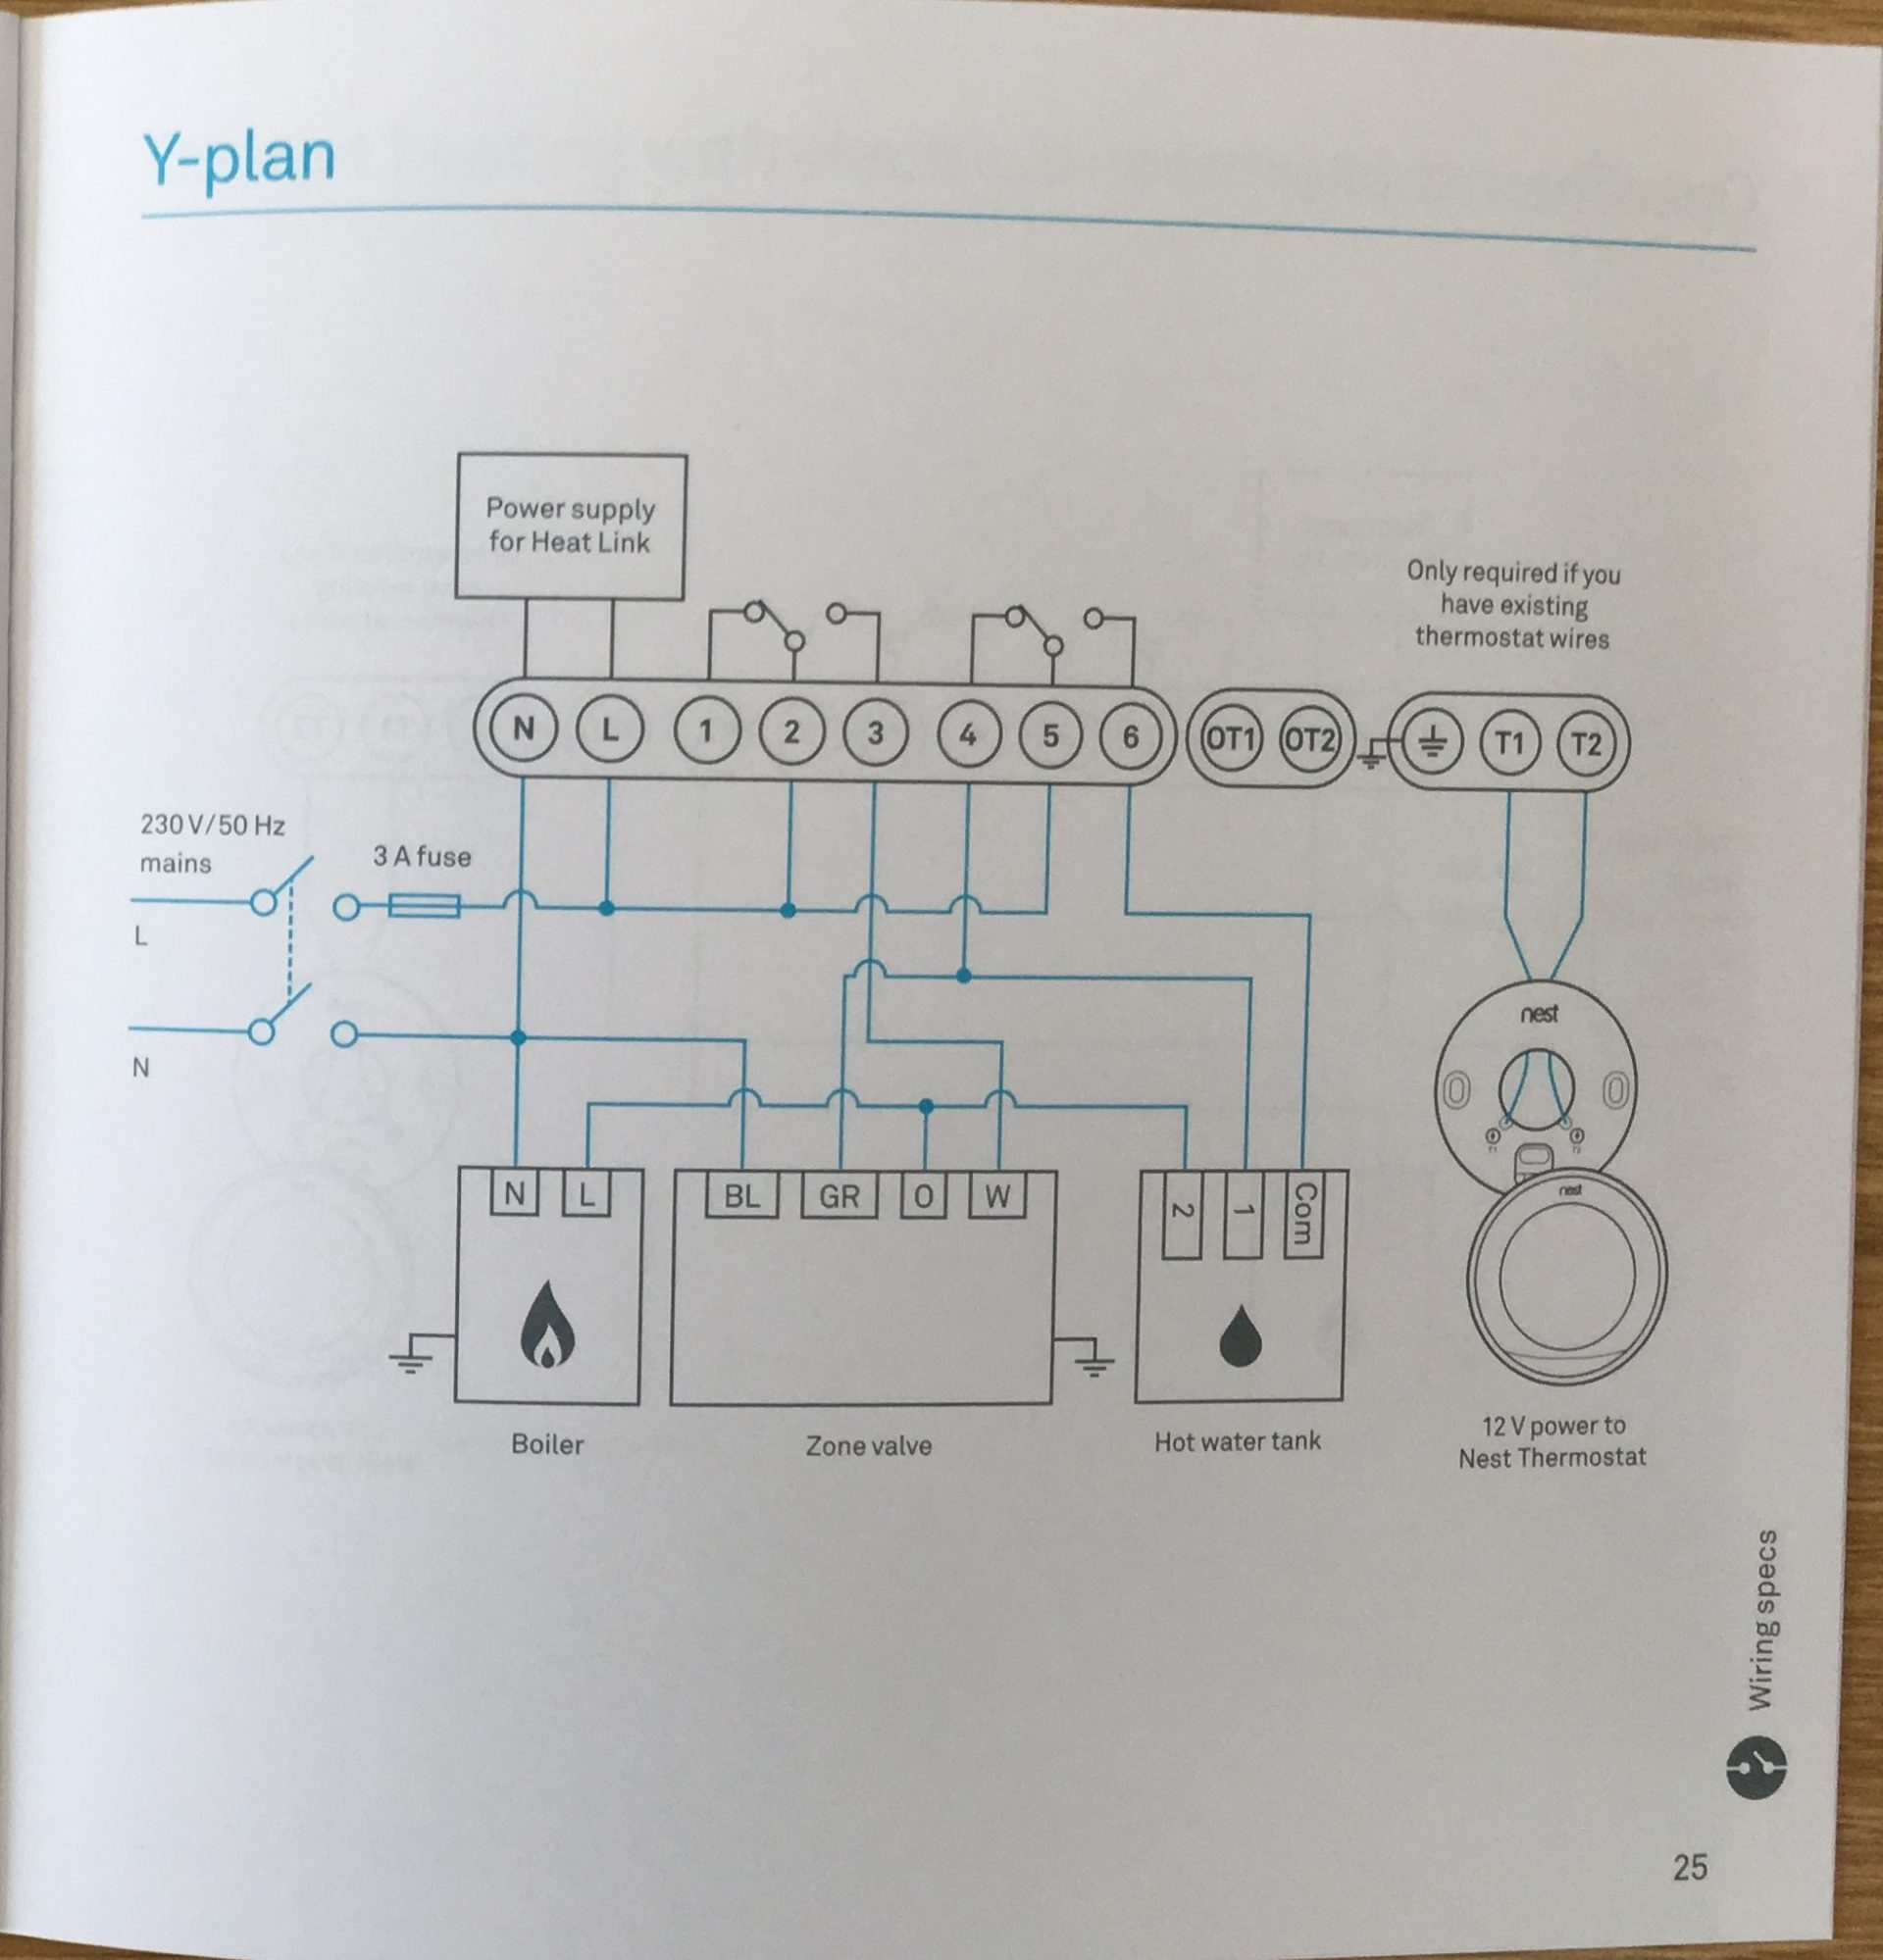 How To Install The Nest Learning Thermostat (3Rd Gen) In A Y-Plan - Nest Thermostat Internal Wiring Diagram